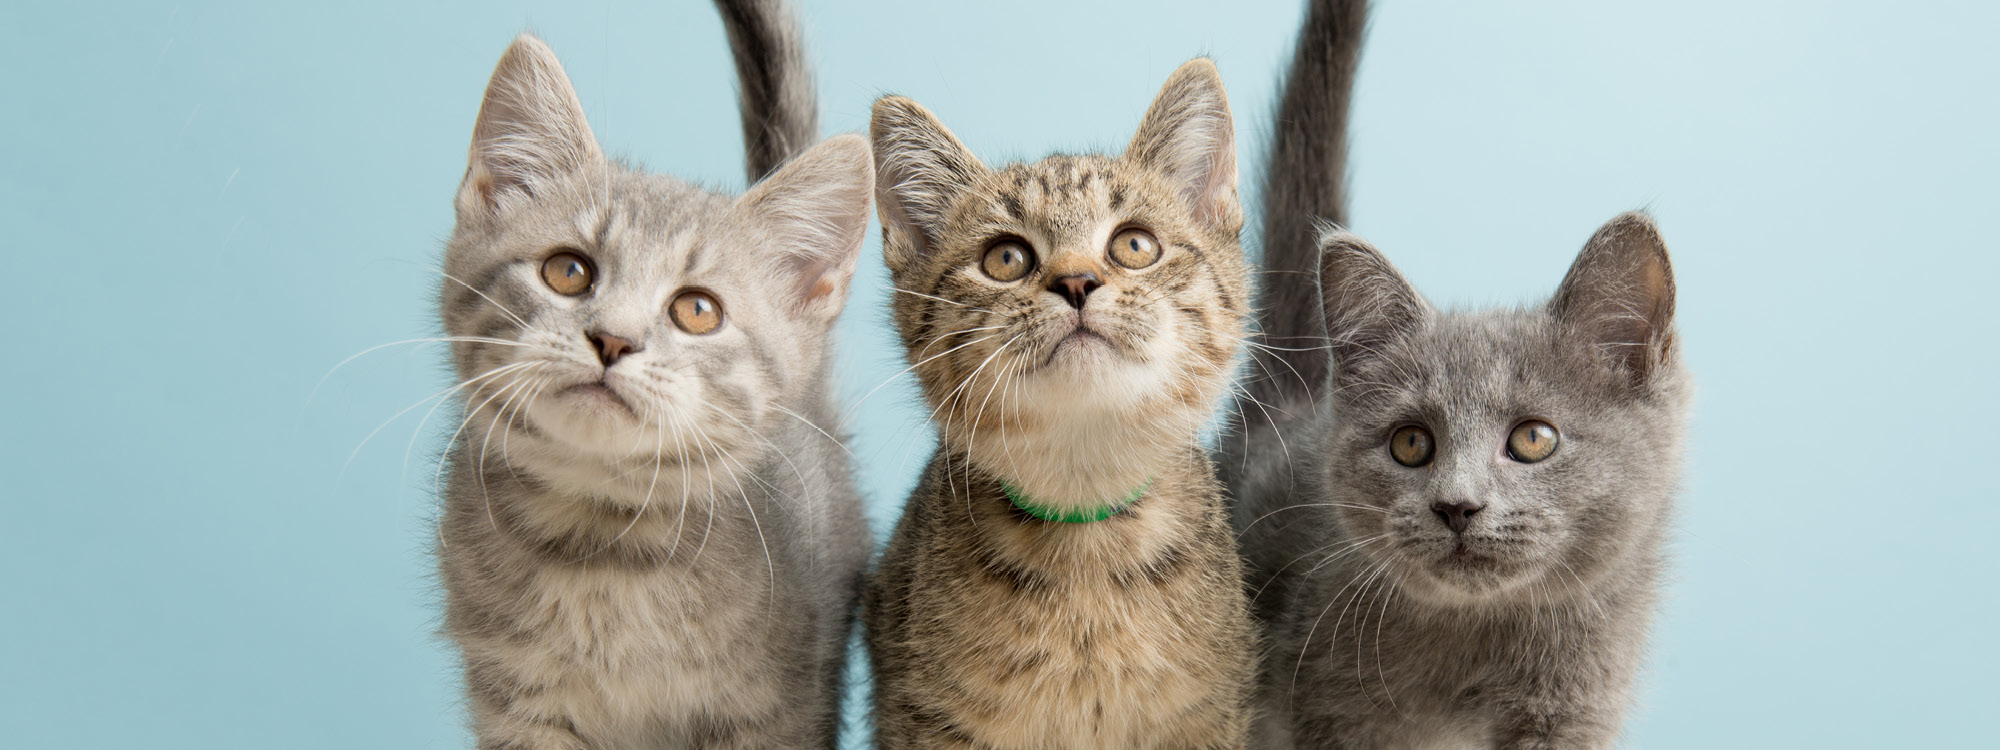 3 kittens in front of a light blue background